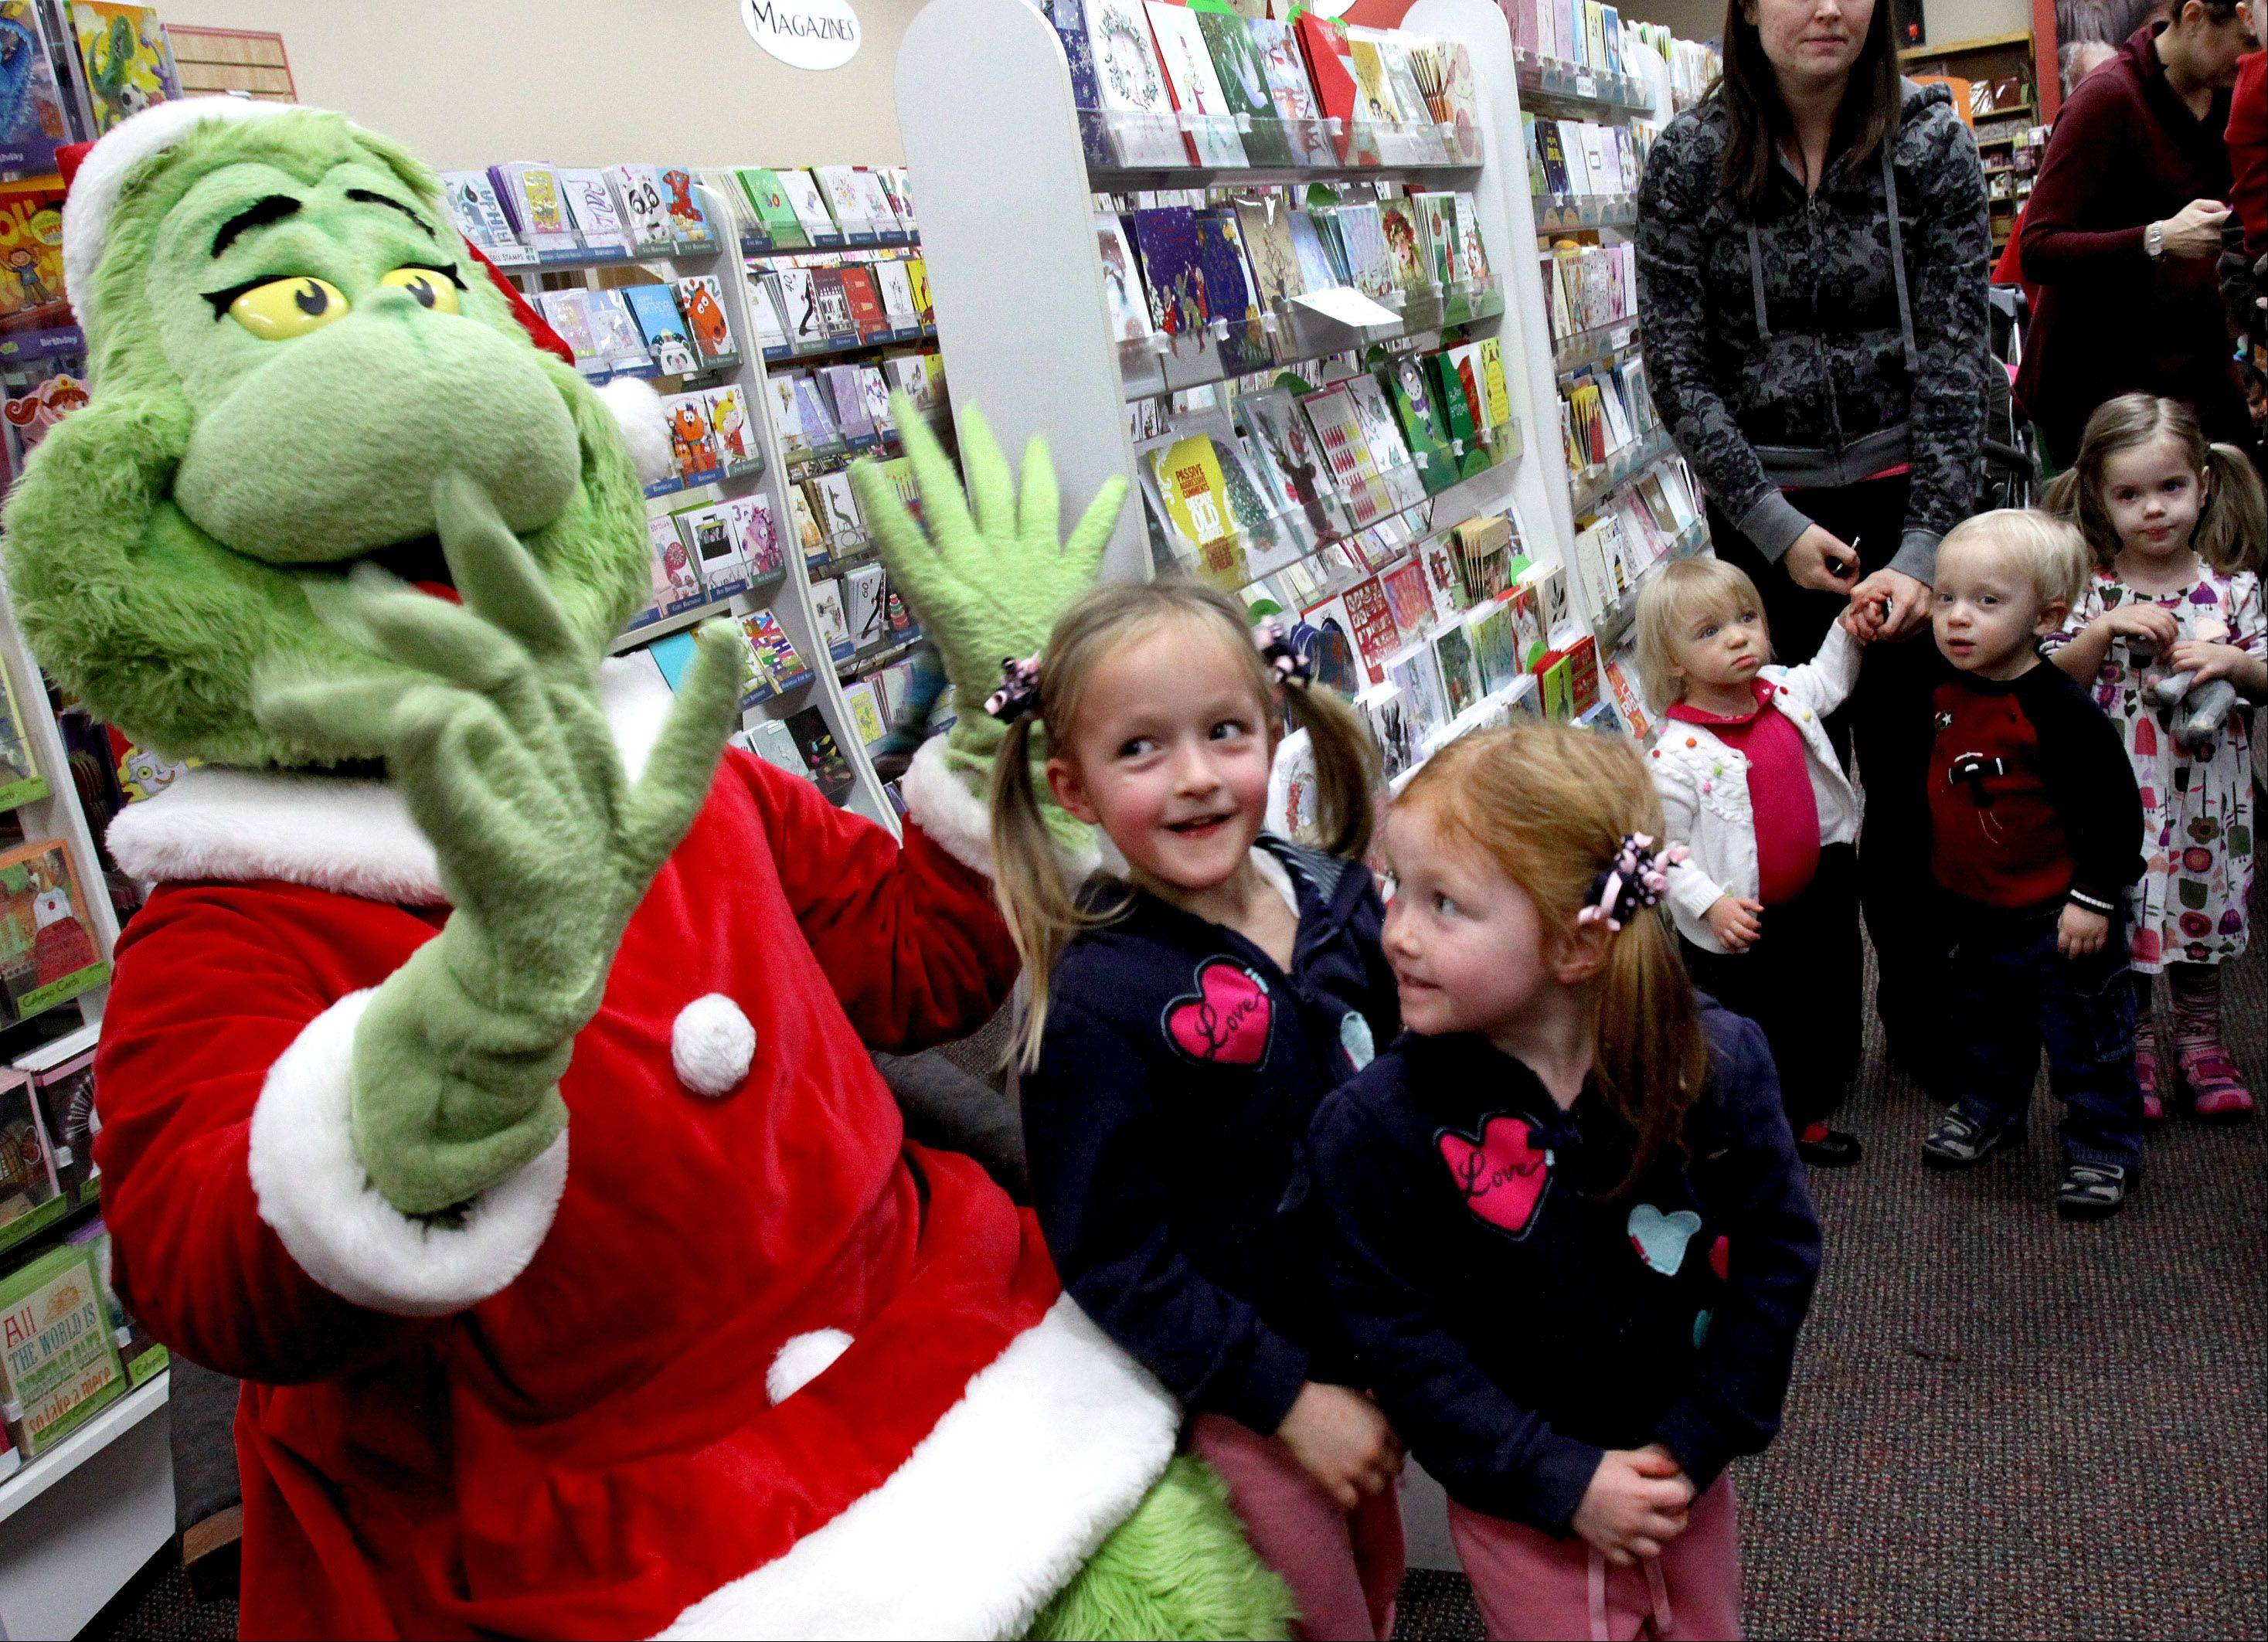 Four-year-old twins Emily, left, and Abigail Schiltz, of Naperville, meet the Grinch as other kids wait their turn to pose for photos, at Anderson's Bookshop in Naperville Friday.